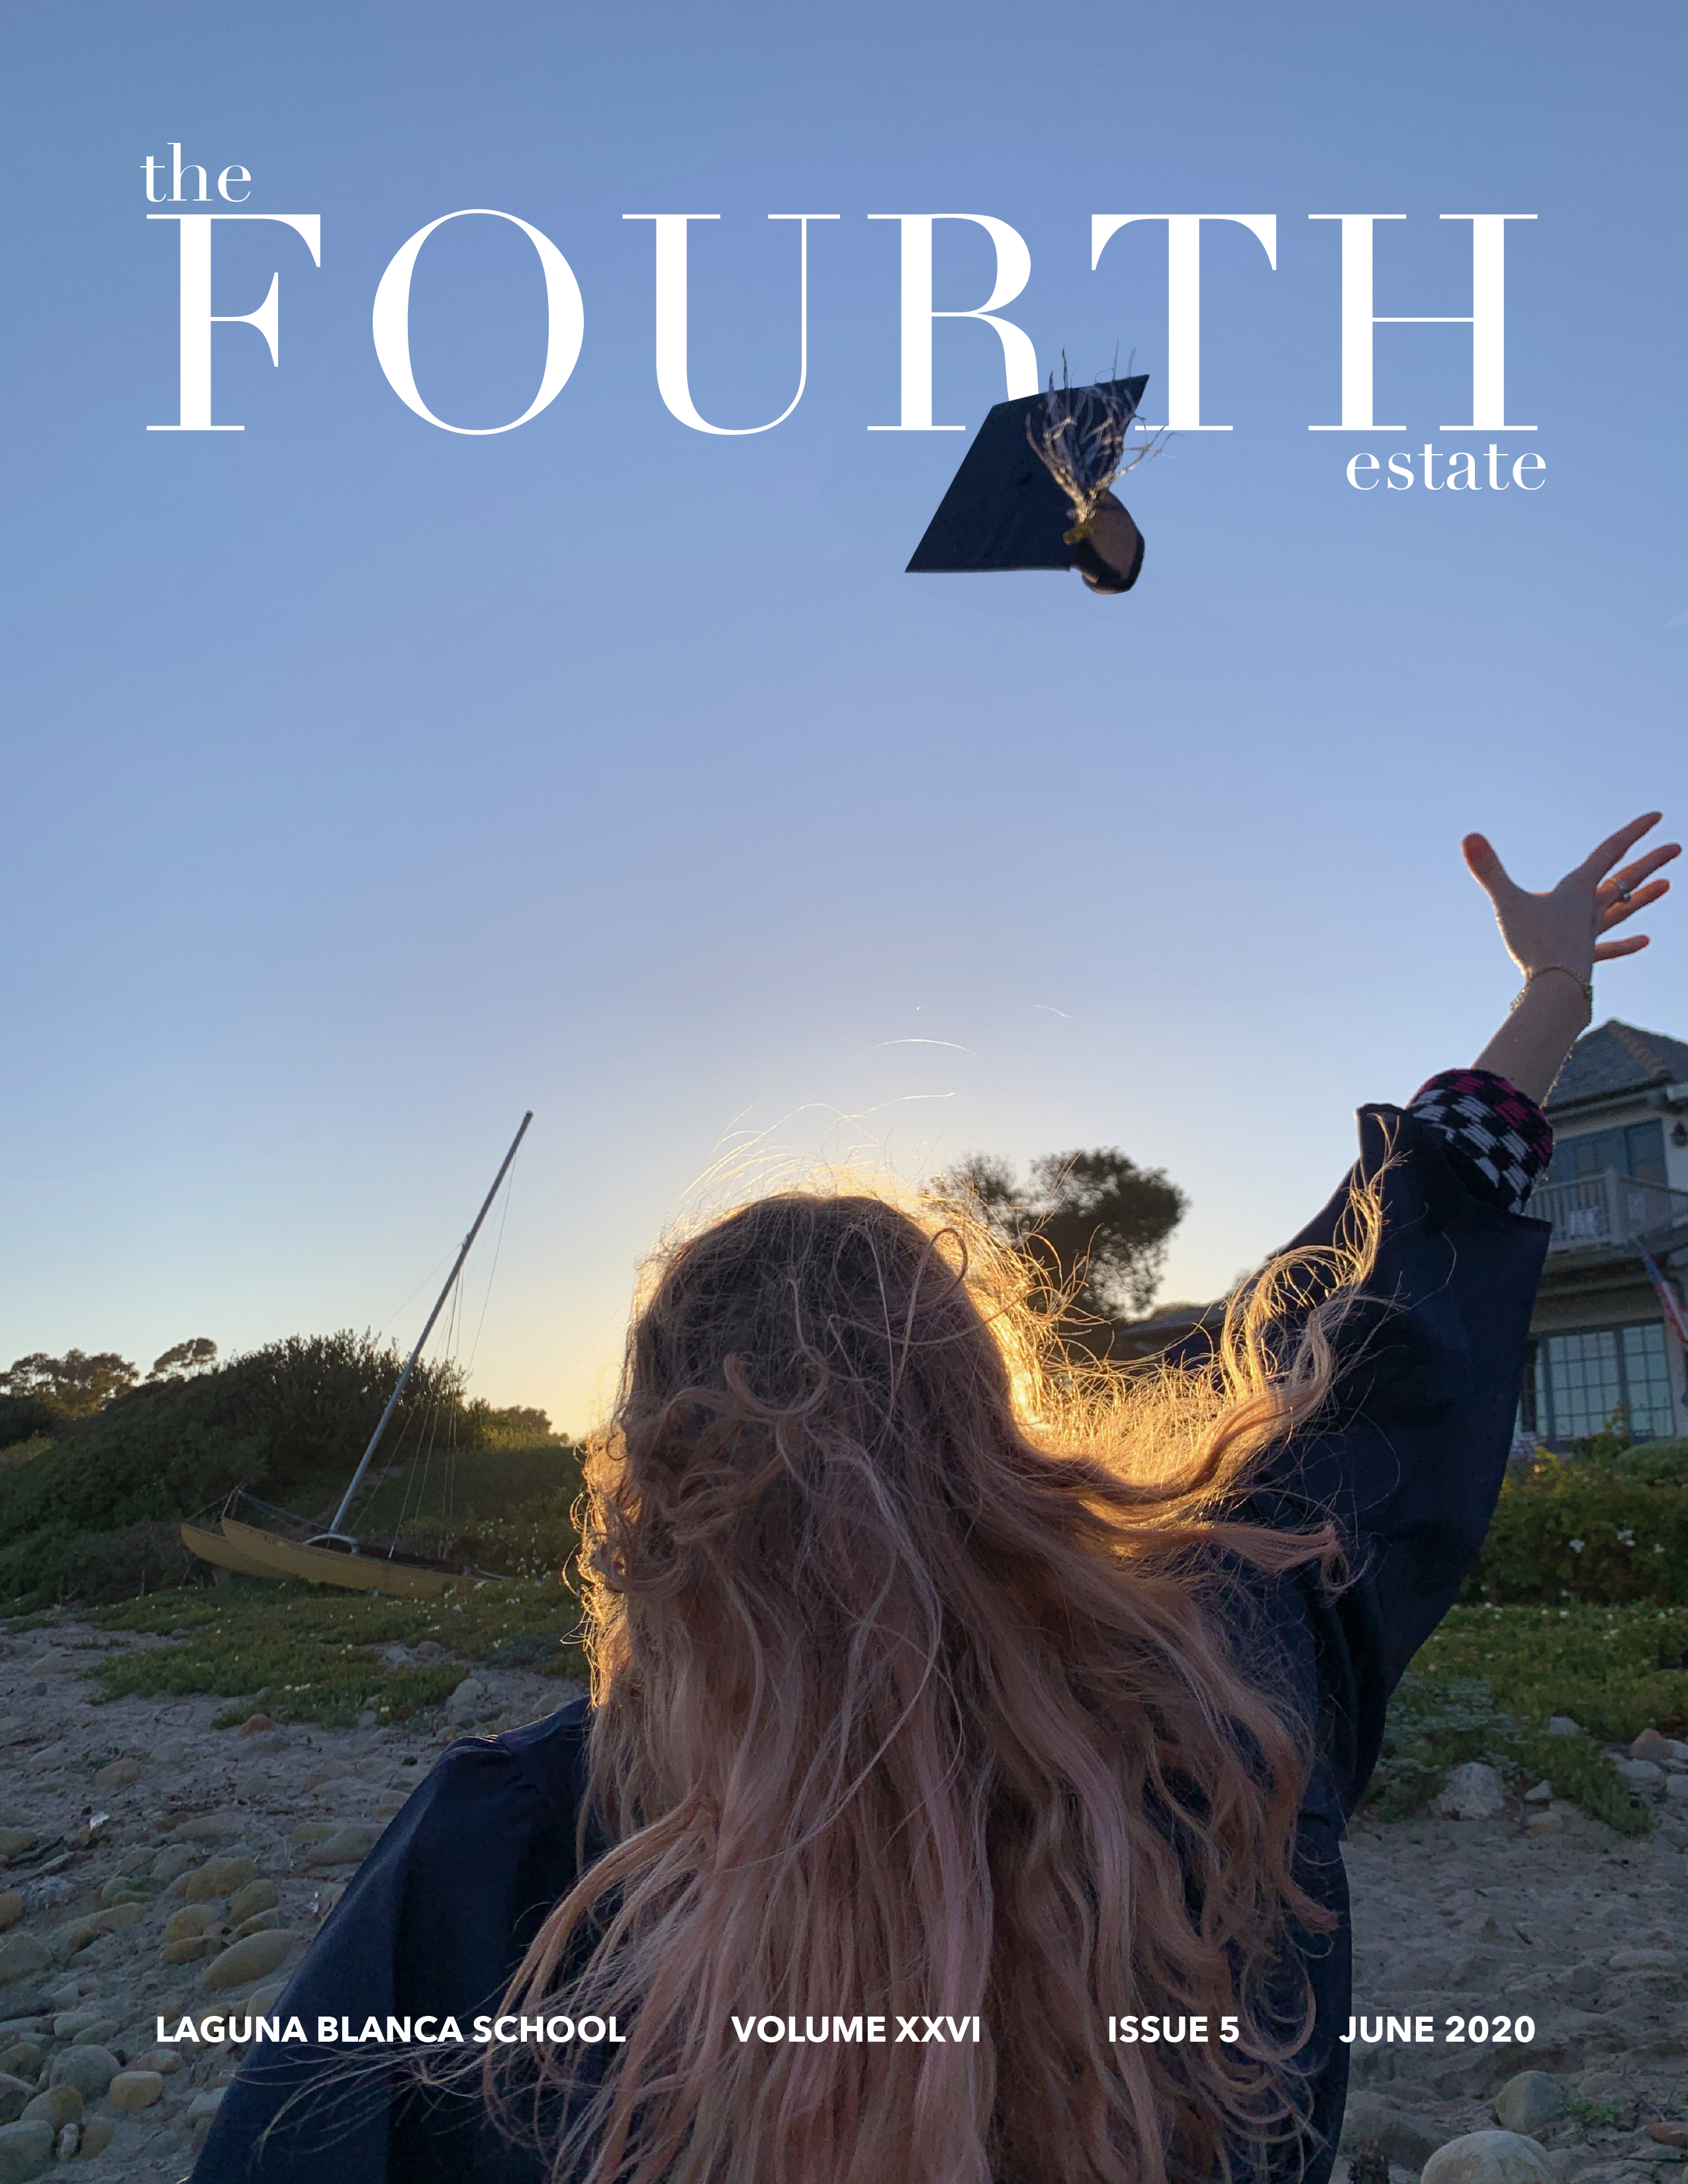 https://issuu.com/thefourthestate5/docs/final_june_senior_issue